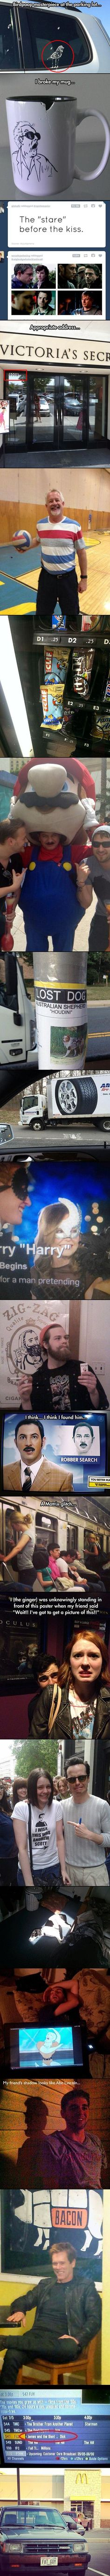 We have rounded up some unintentionally ironic pictures captured at the perfect time.: